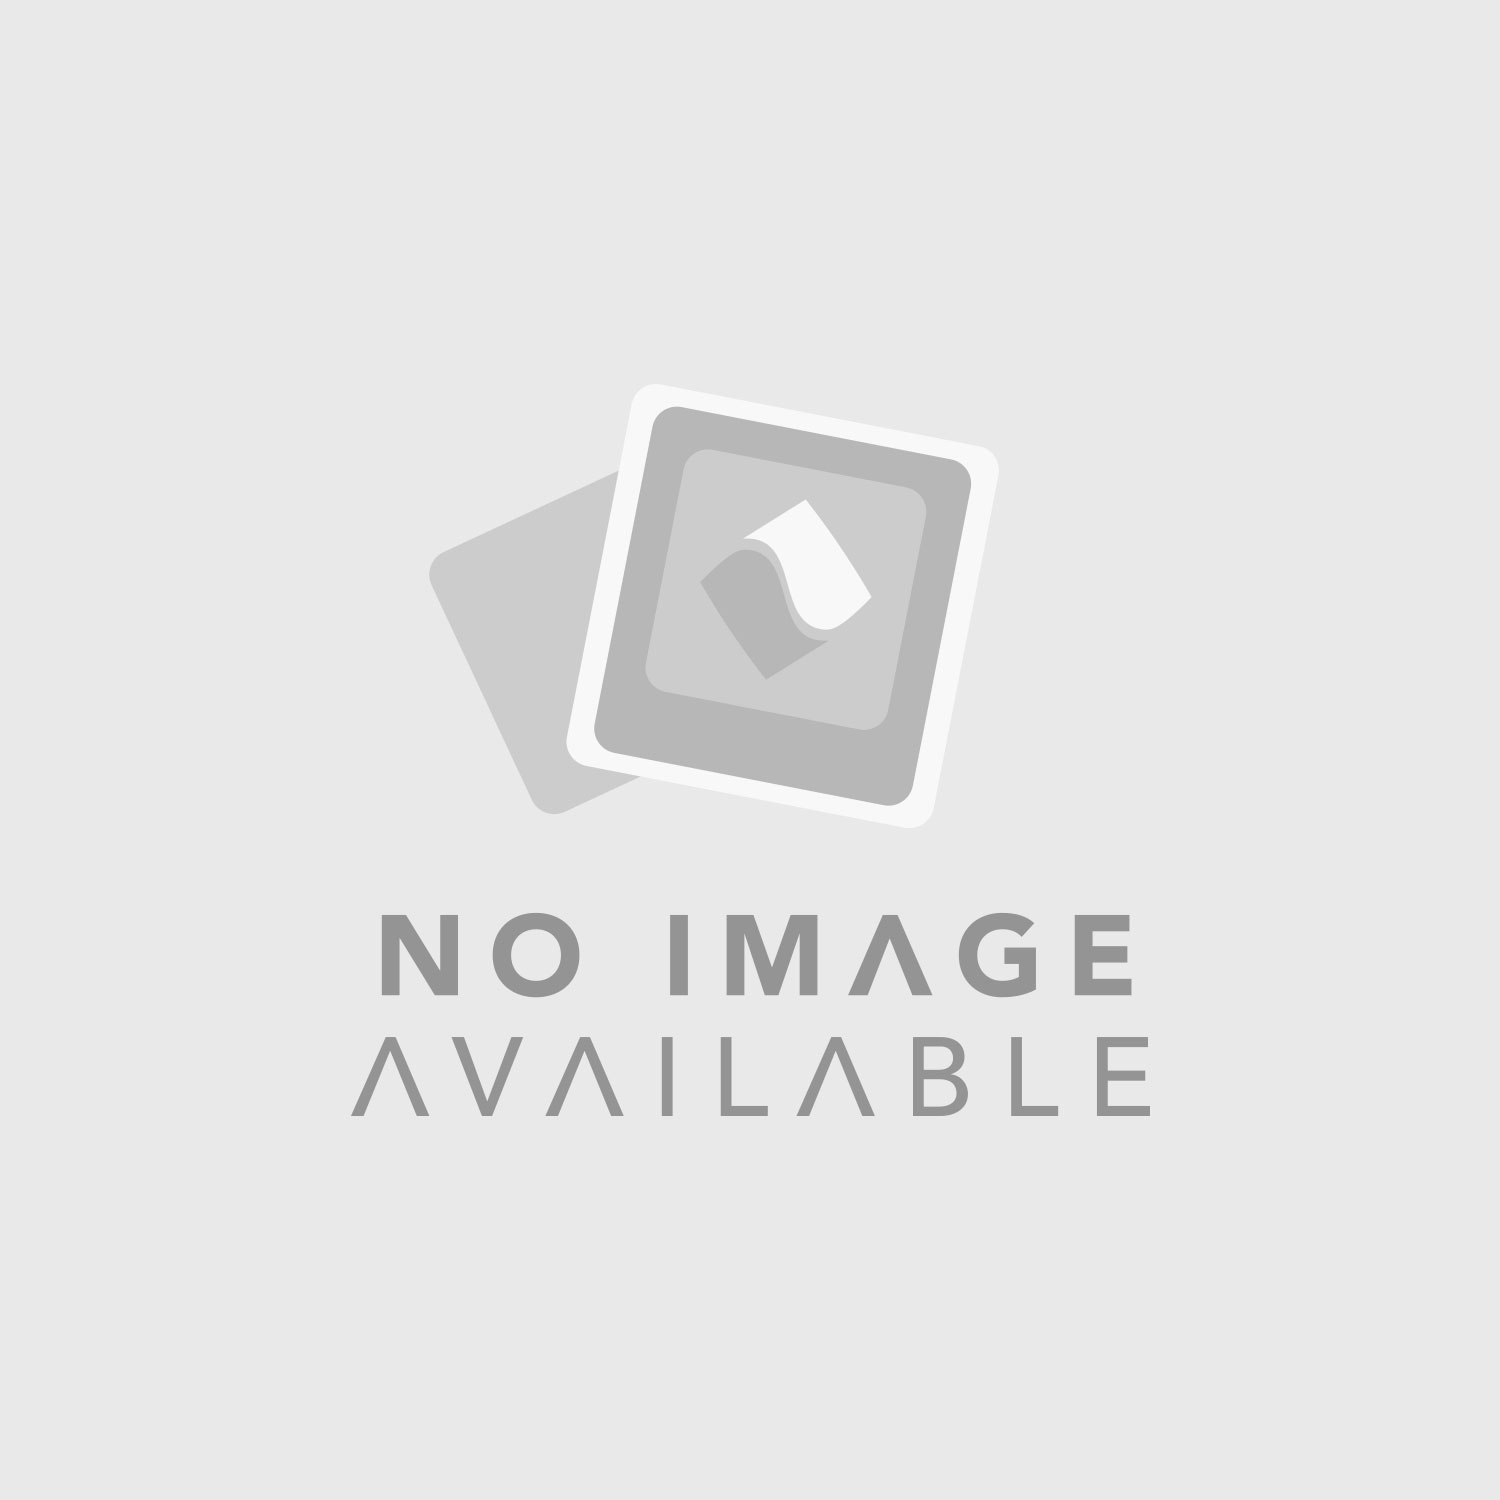 Neutrik XXR-8 Color Coding Ring (Grey)